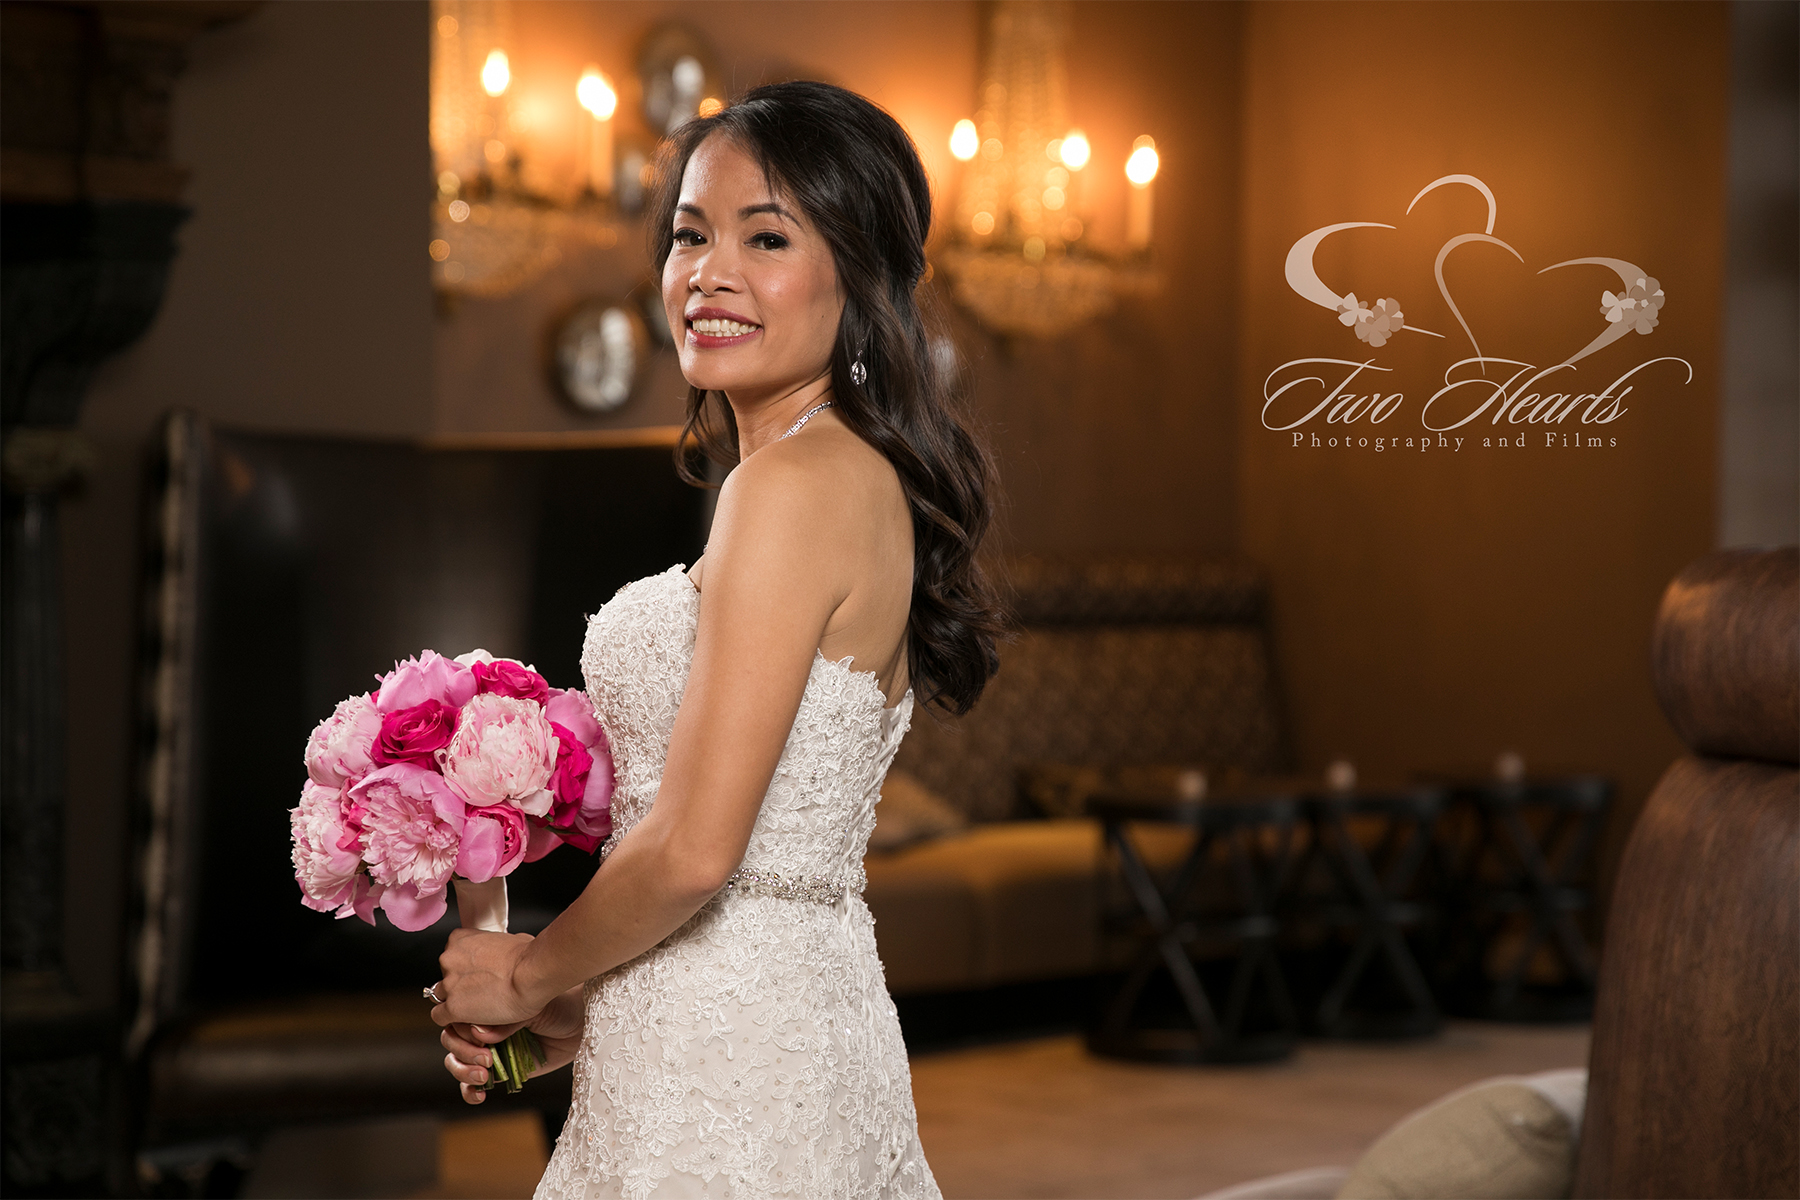 Wedding photography houston prices East Forsyth High School, Kernersville, NC - Home of